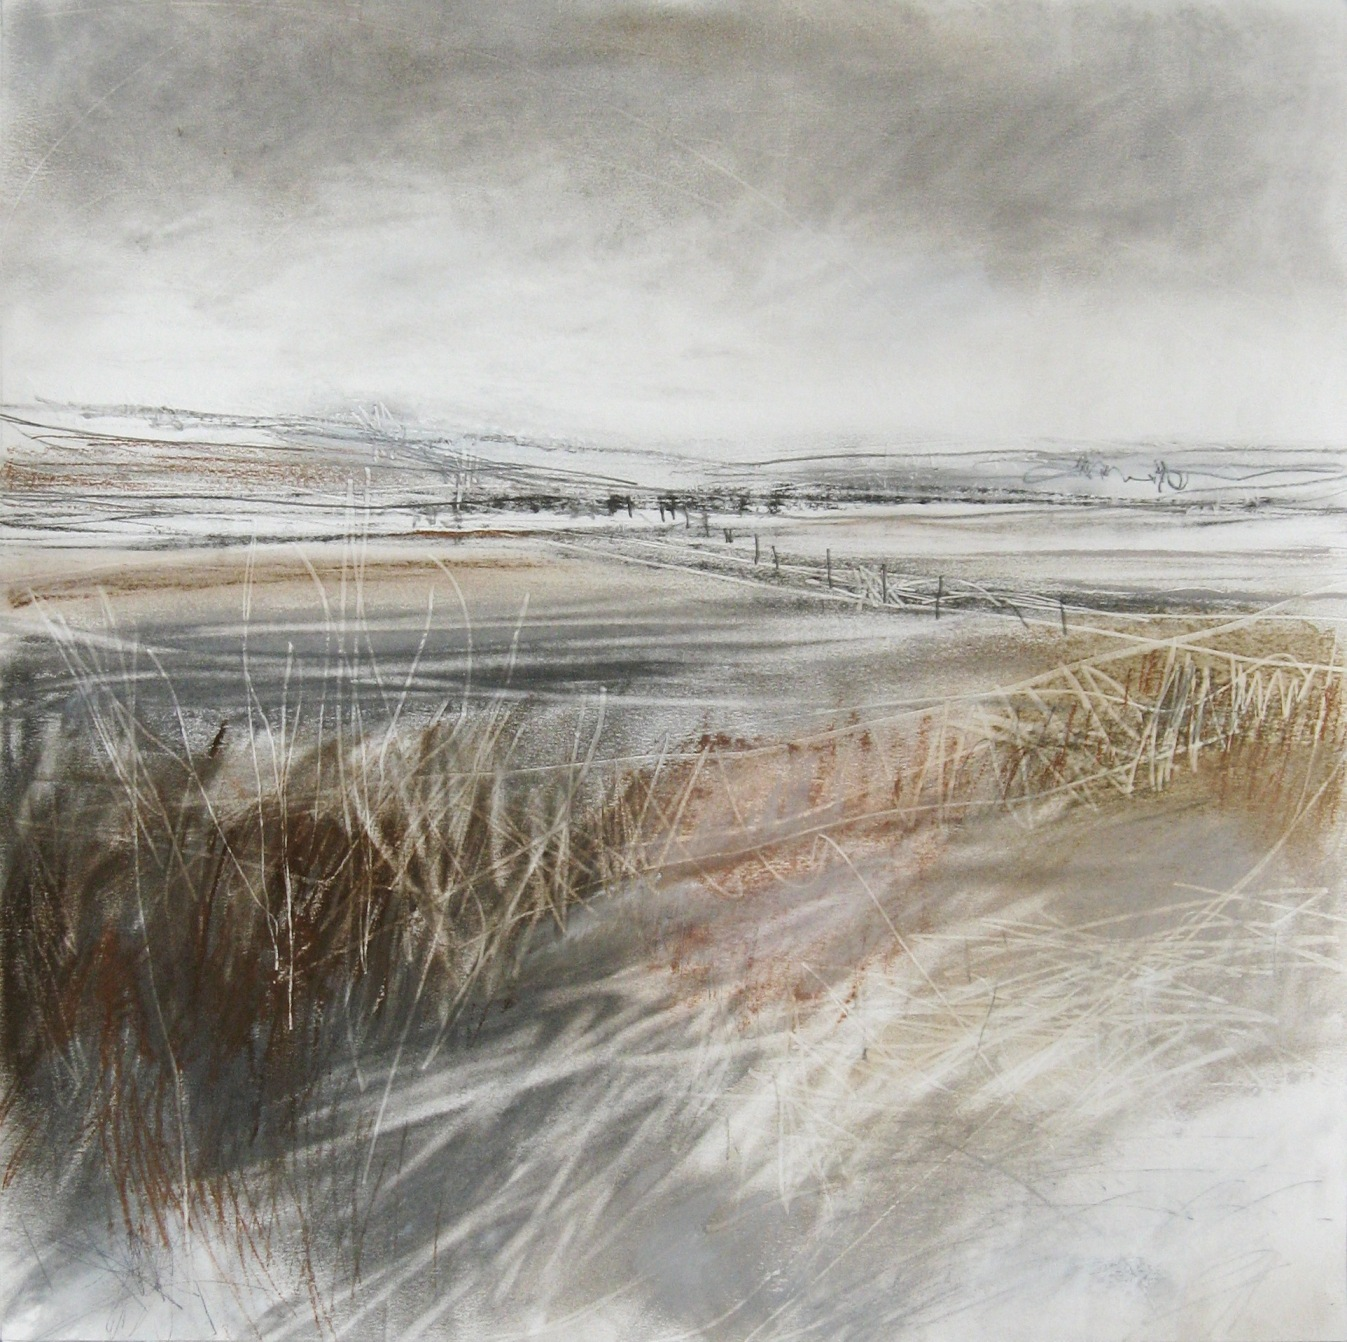 Last of the Snow at Rosebrough  Pastel, Charcoal and Graphite on Paper  34 x 34cm  sold